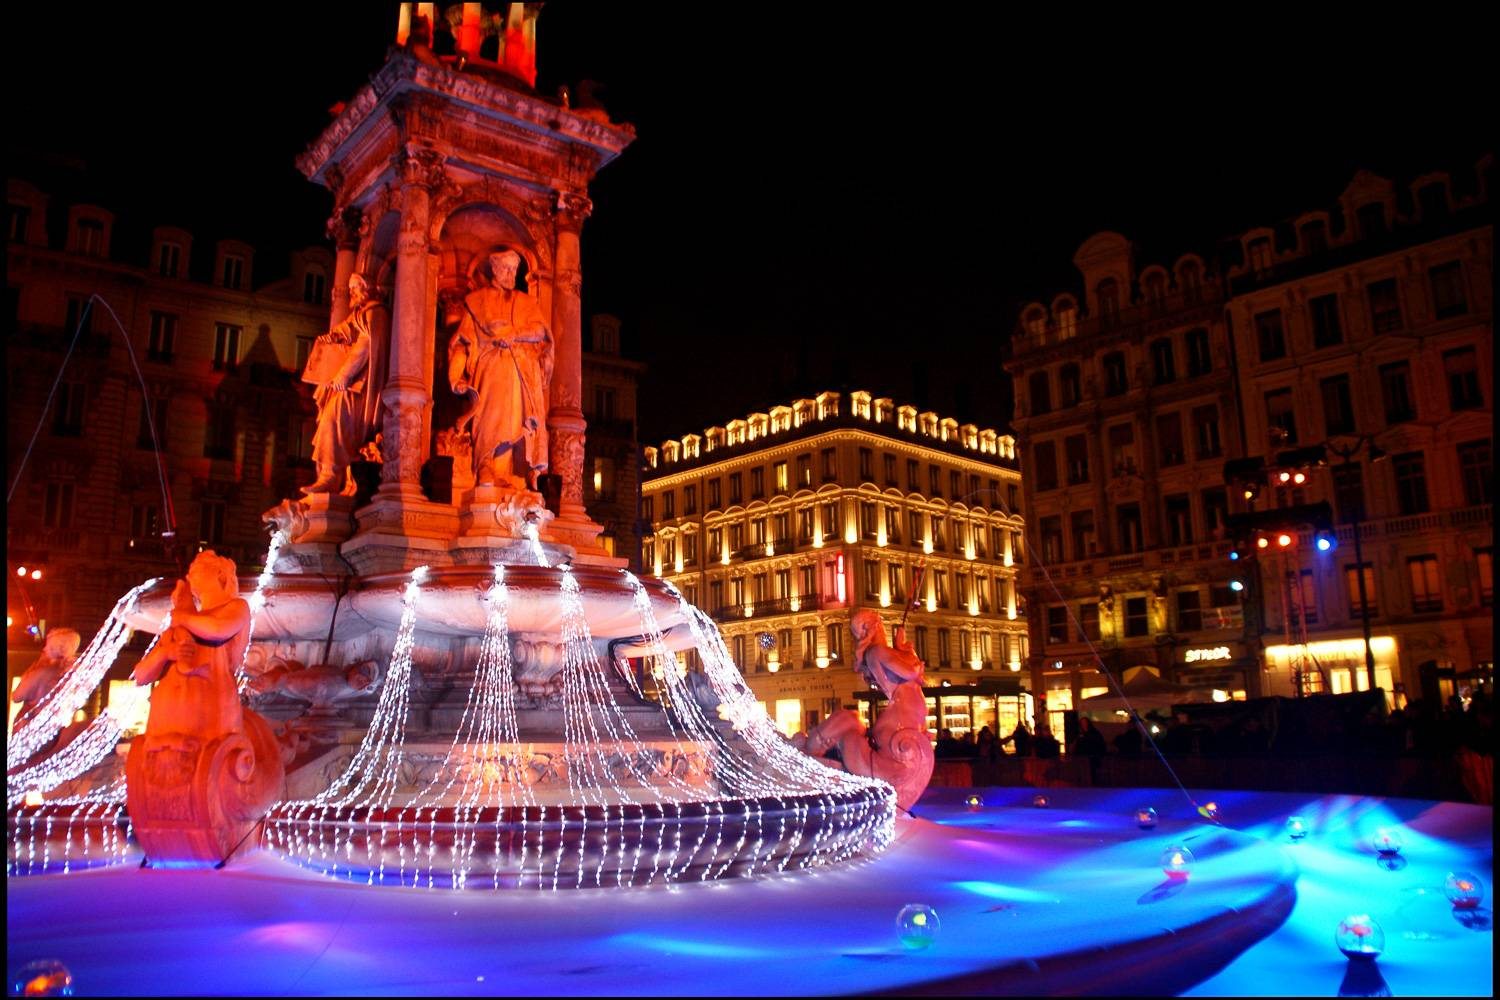 Image of fountain in Lyon decorated with lights for Fête des lumières.